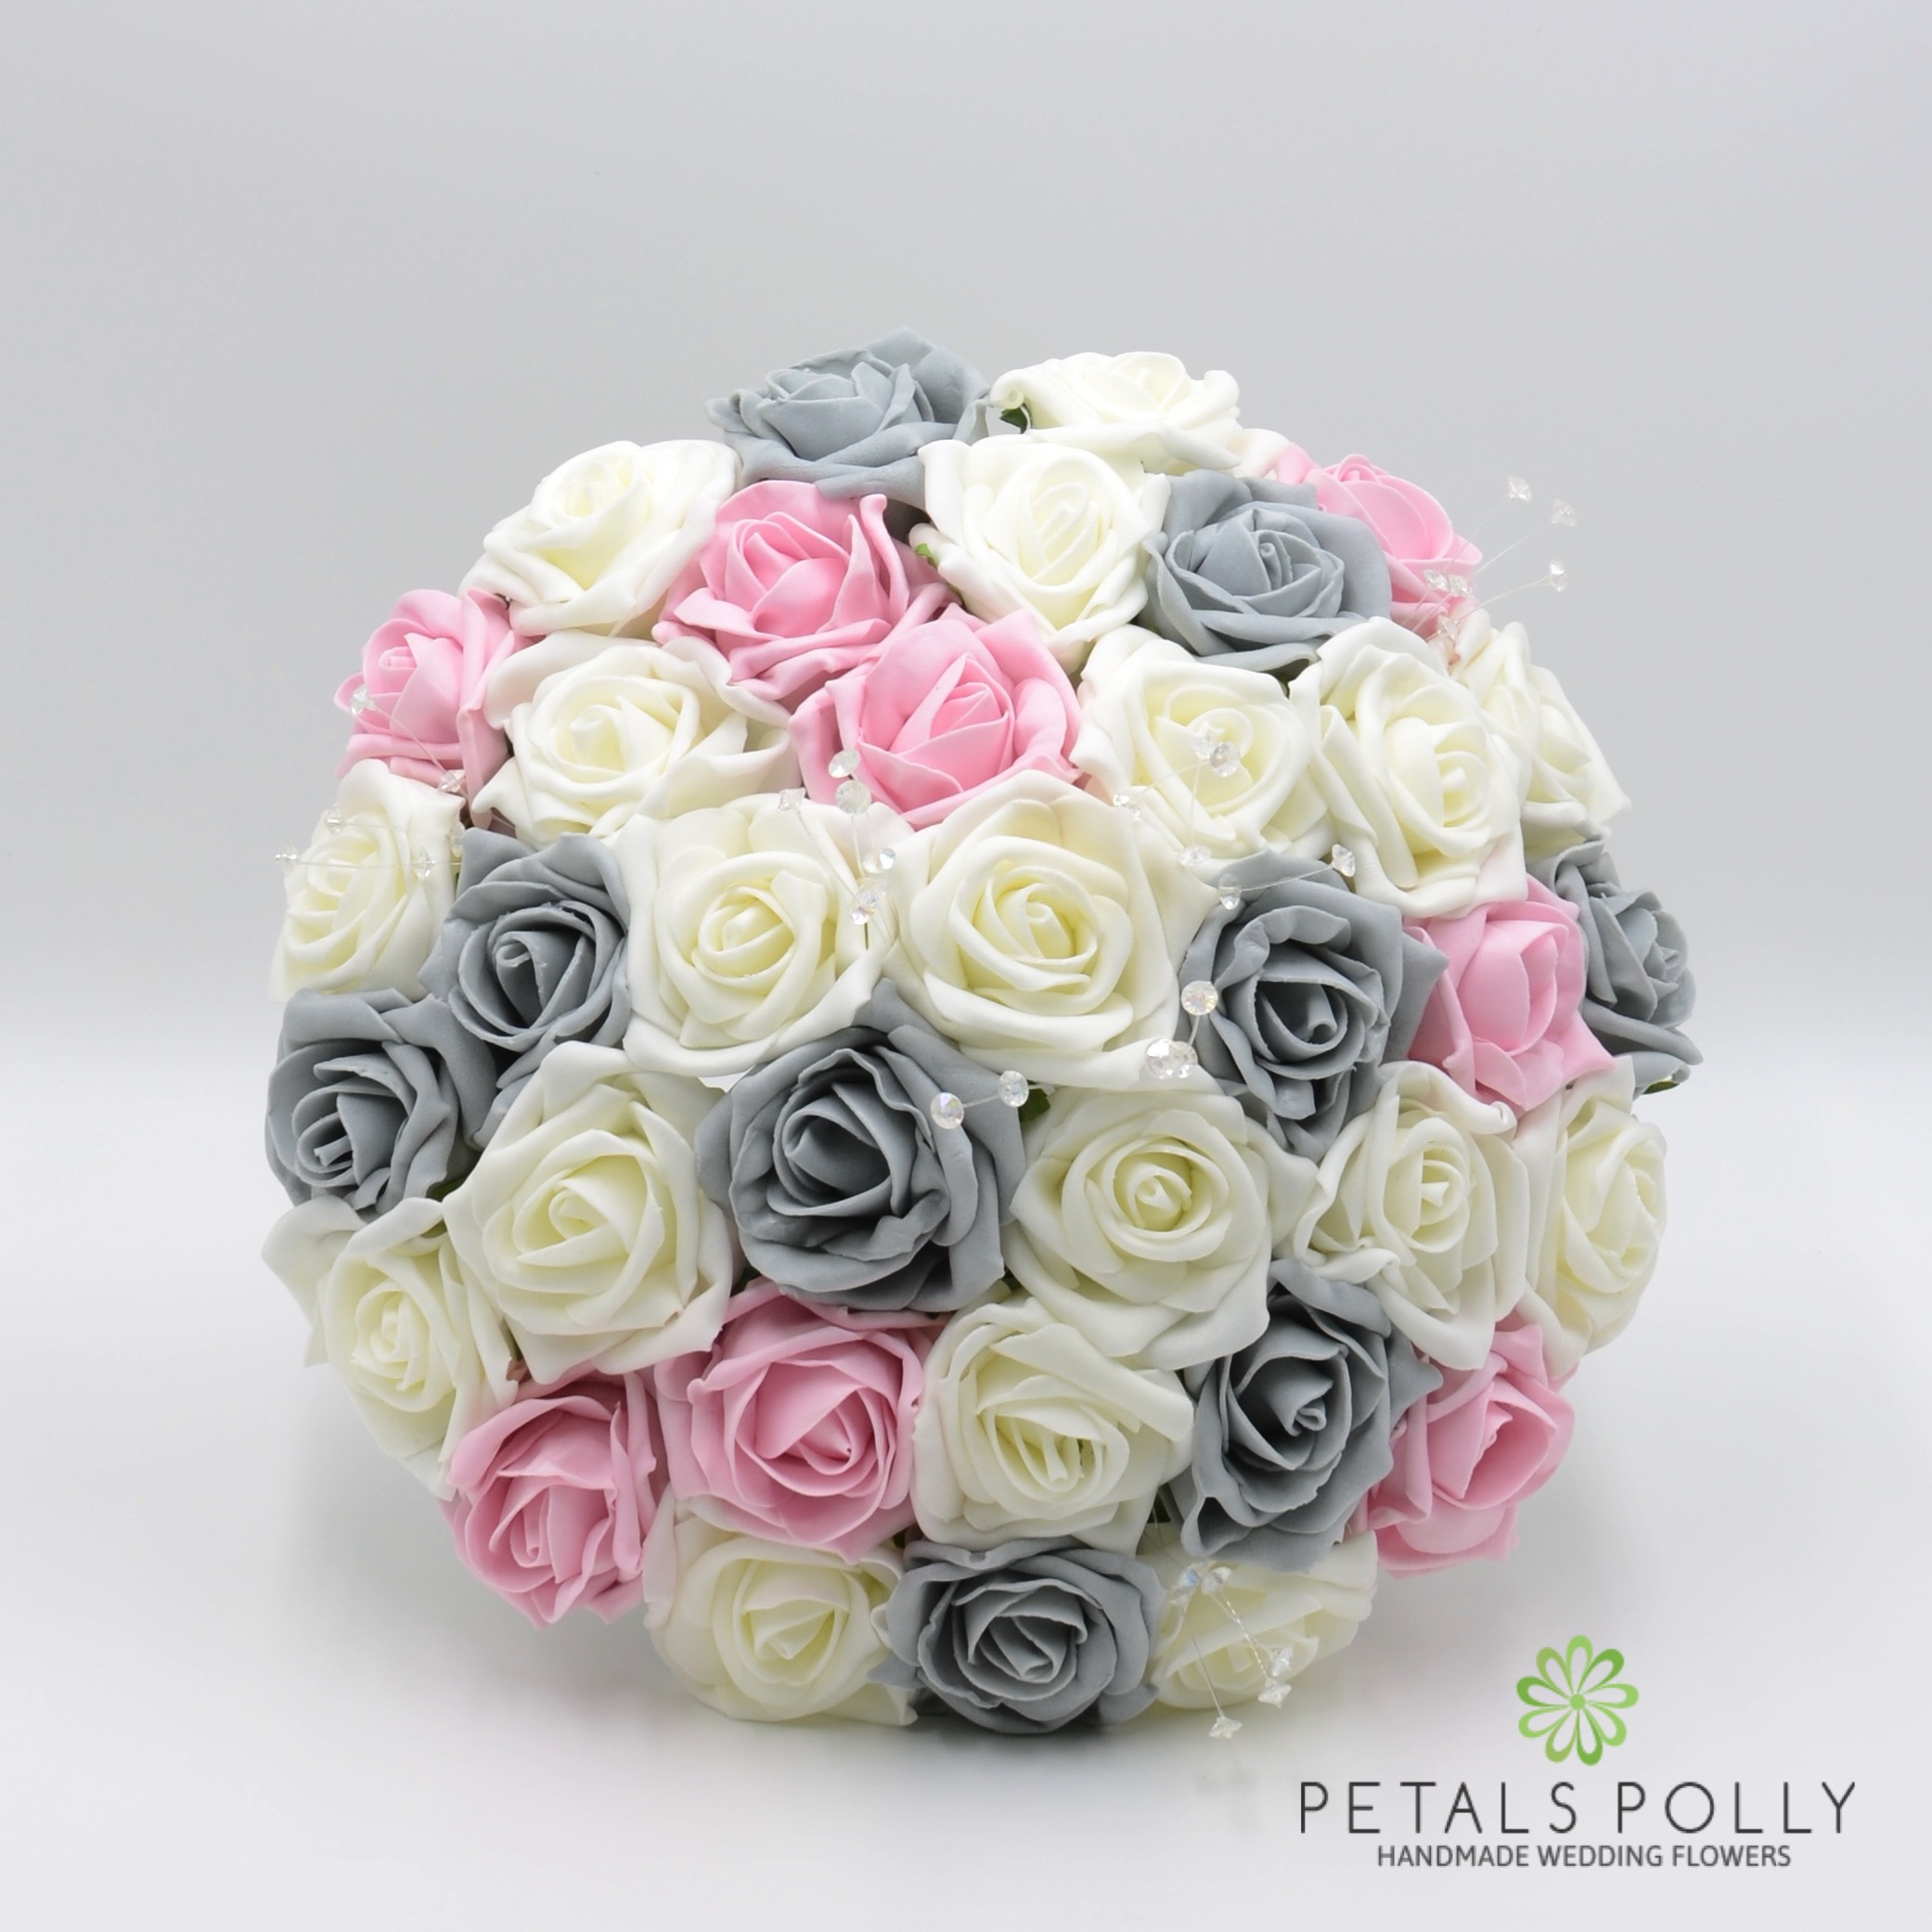 Silk Wedding Flowers Hand Made By Petals Polly Bridesmaids Posy